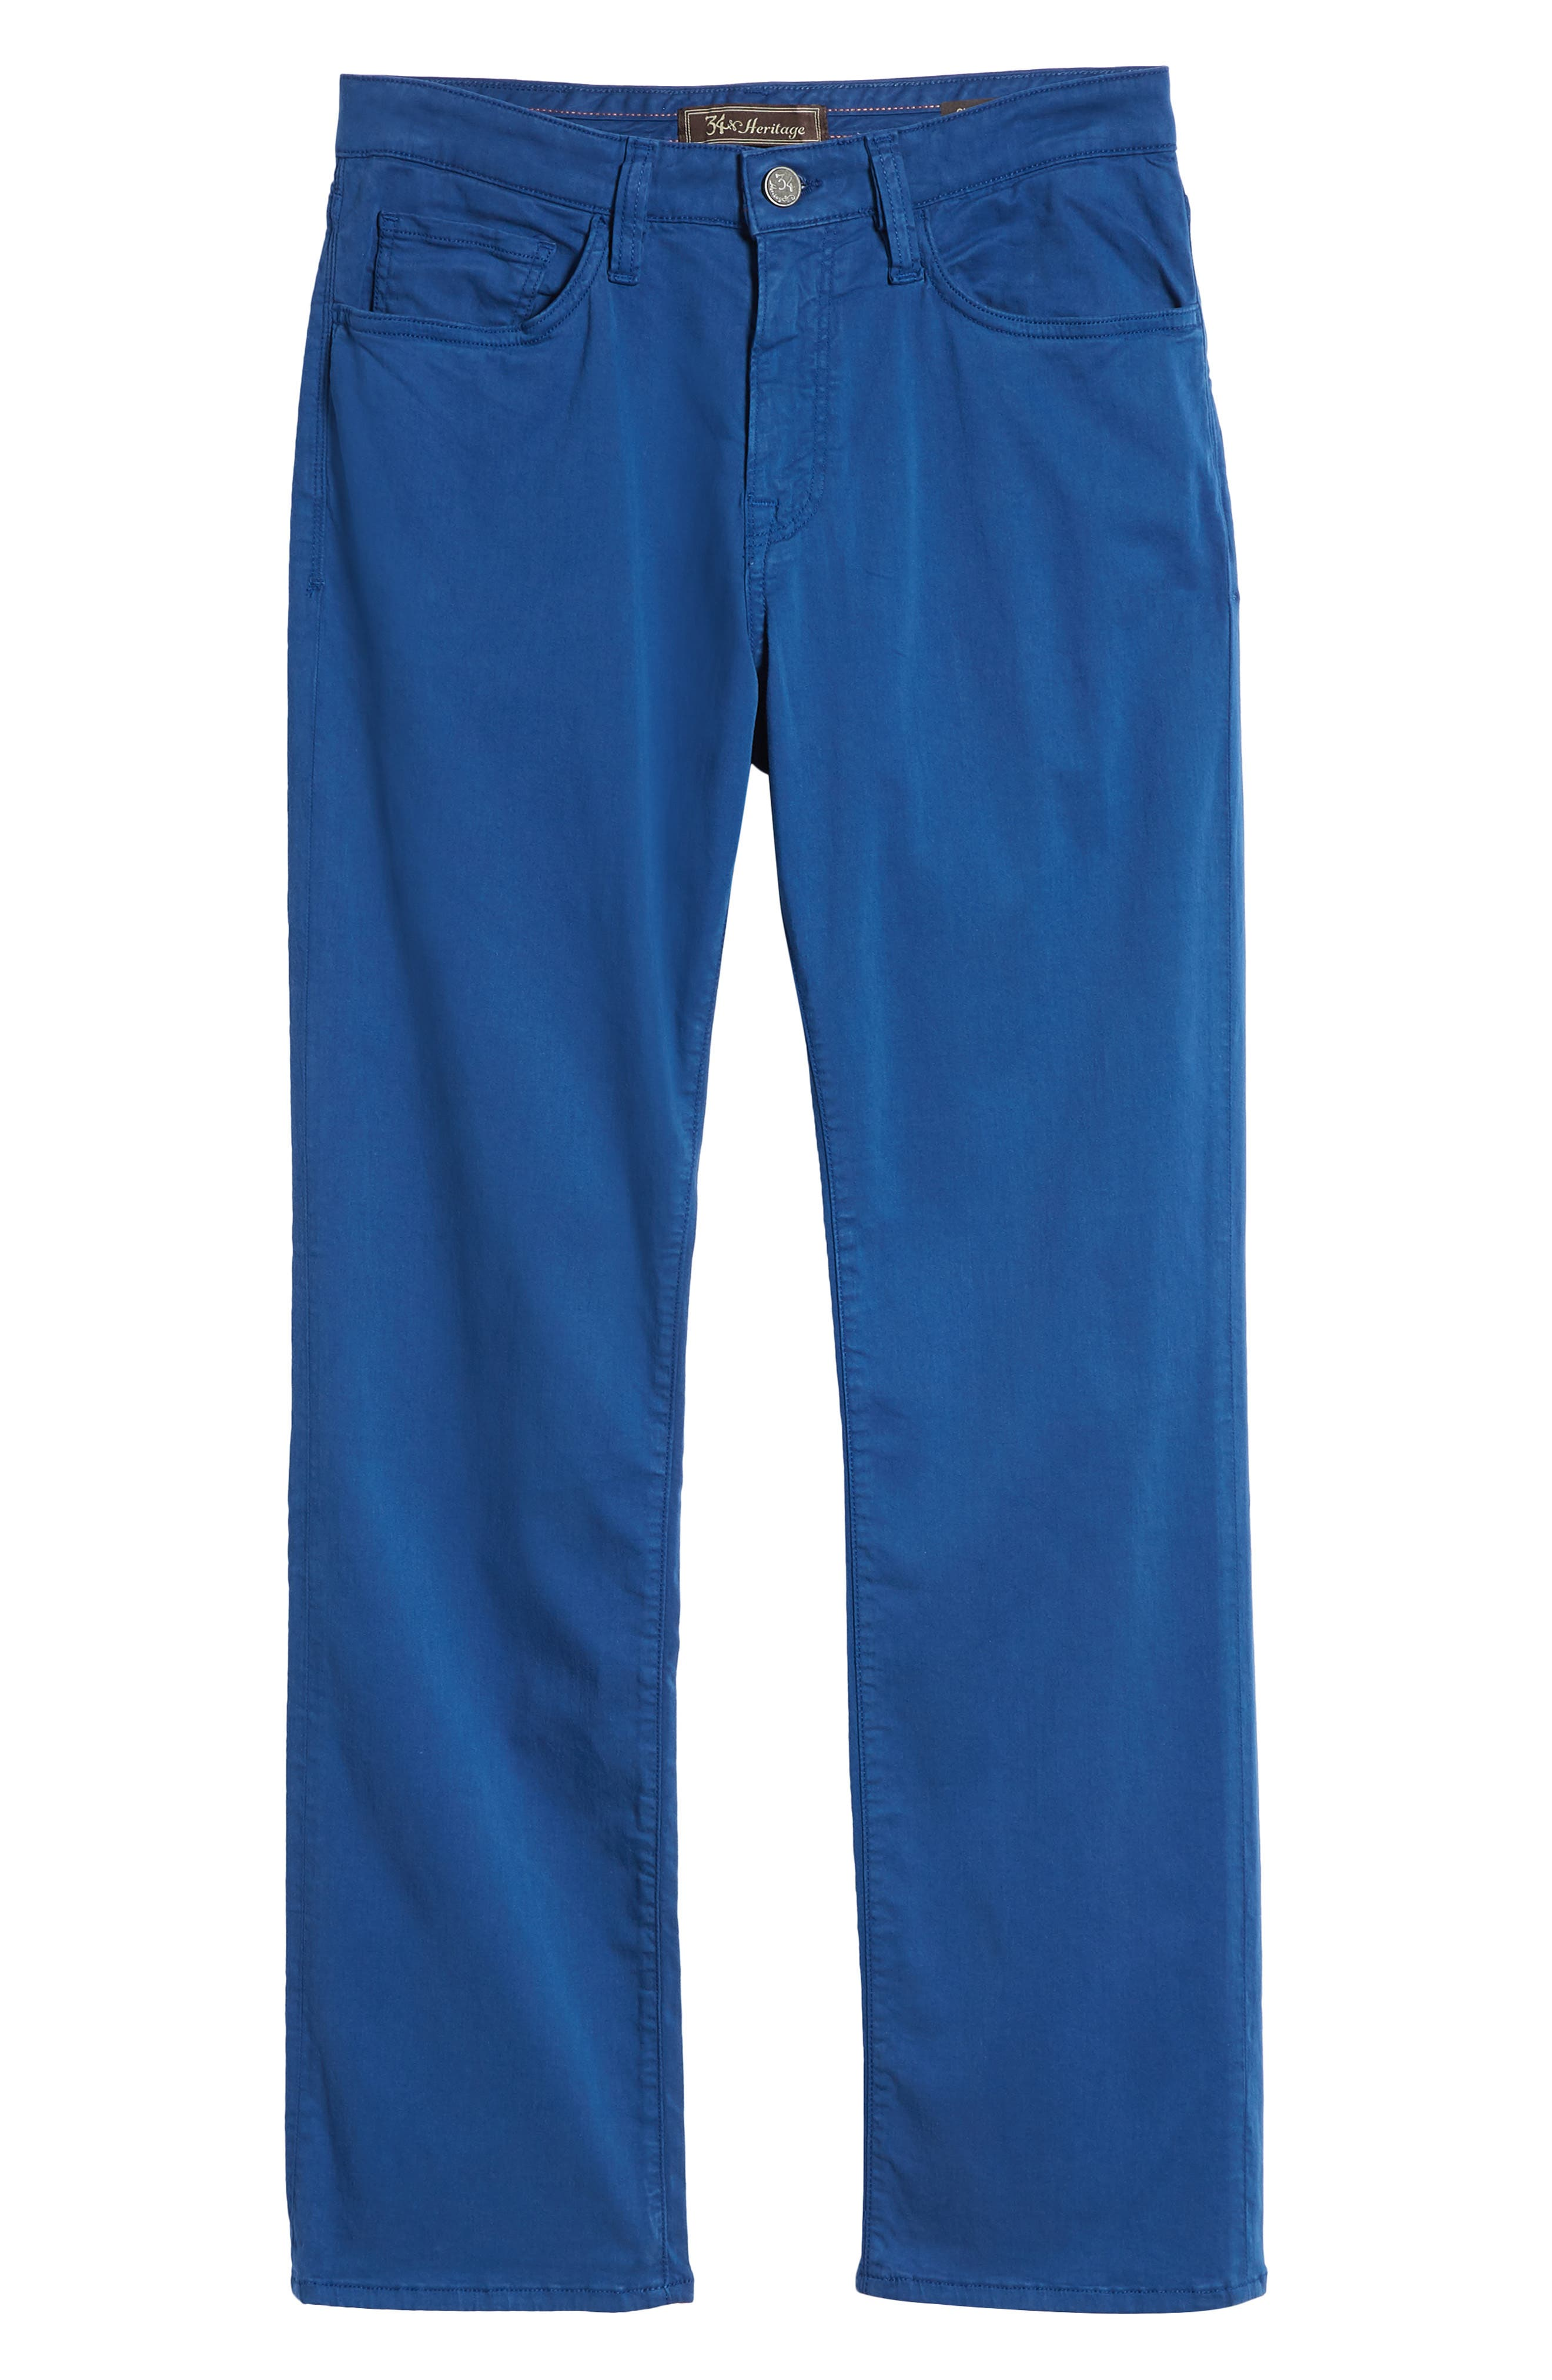 Charisma Relaxed Fit Jeans,                             Alternate thumbnail 6, color,                             ROYAL TWILL